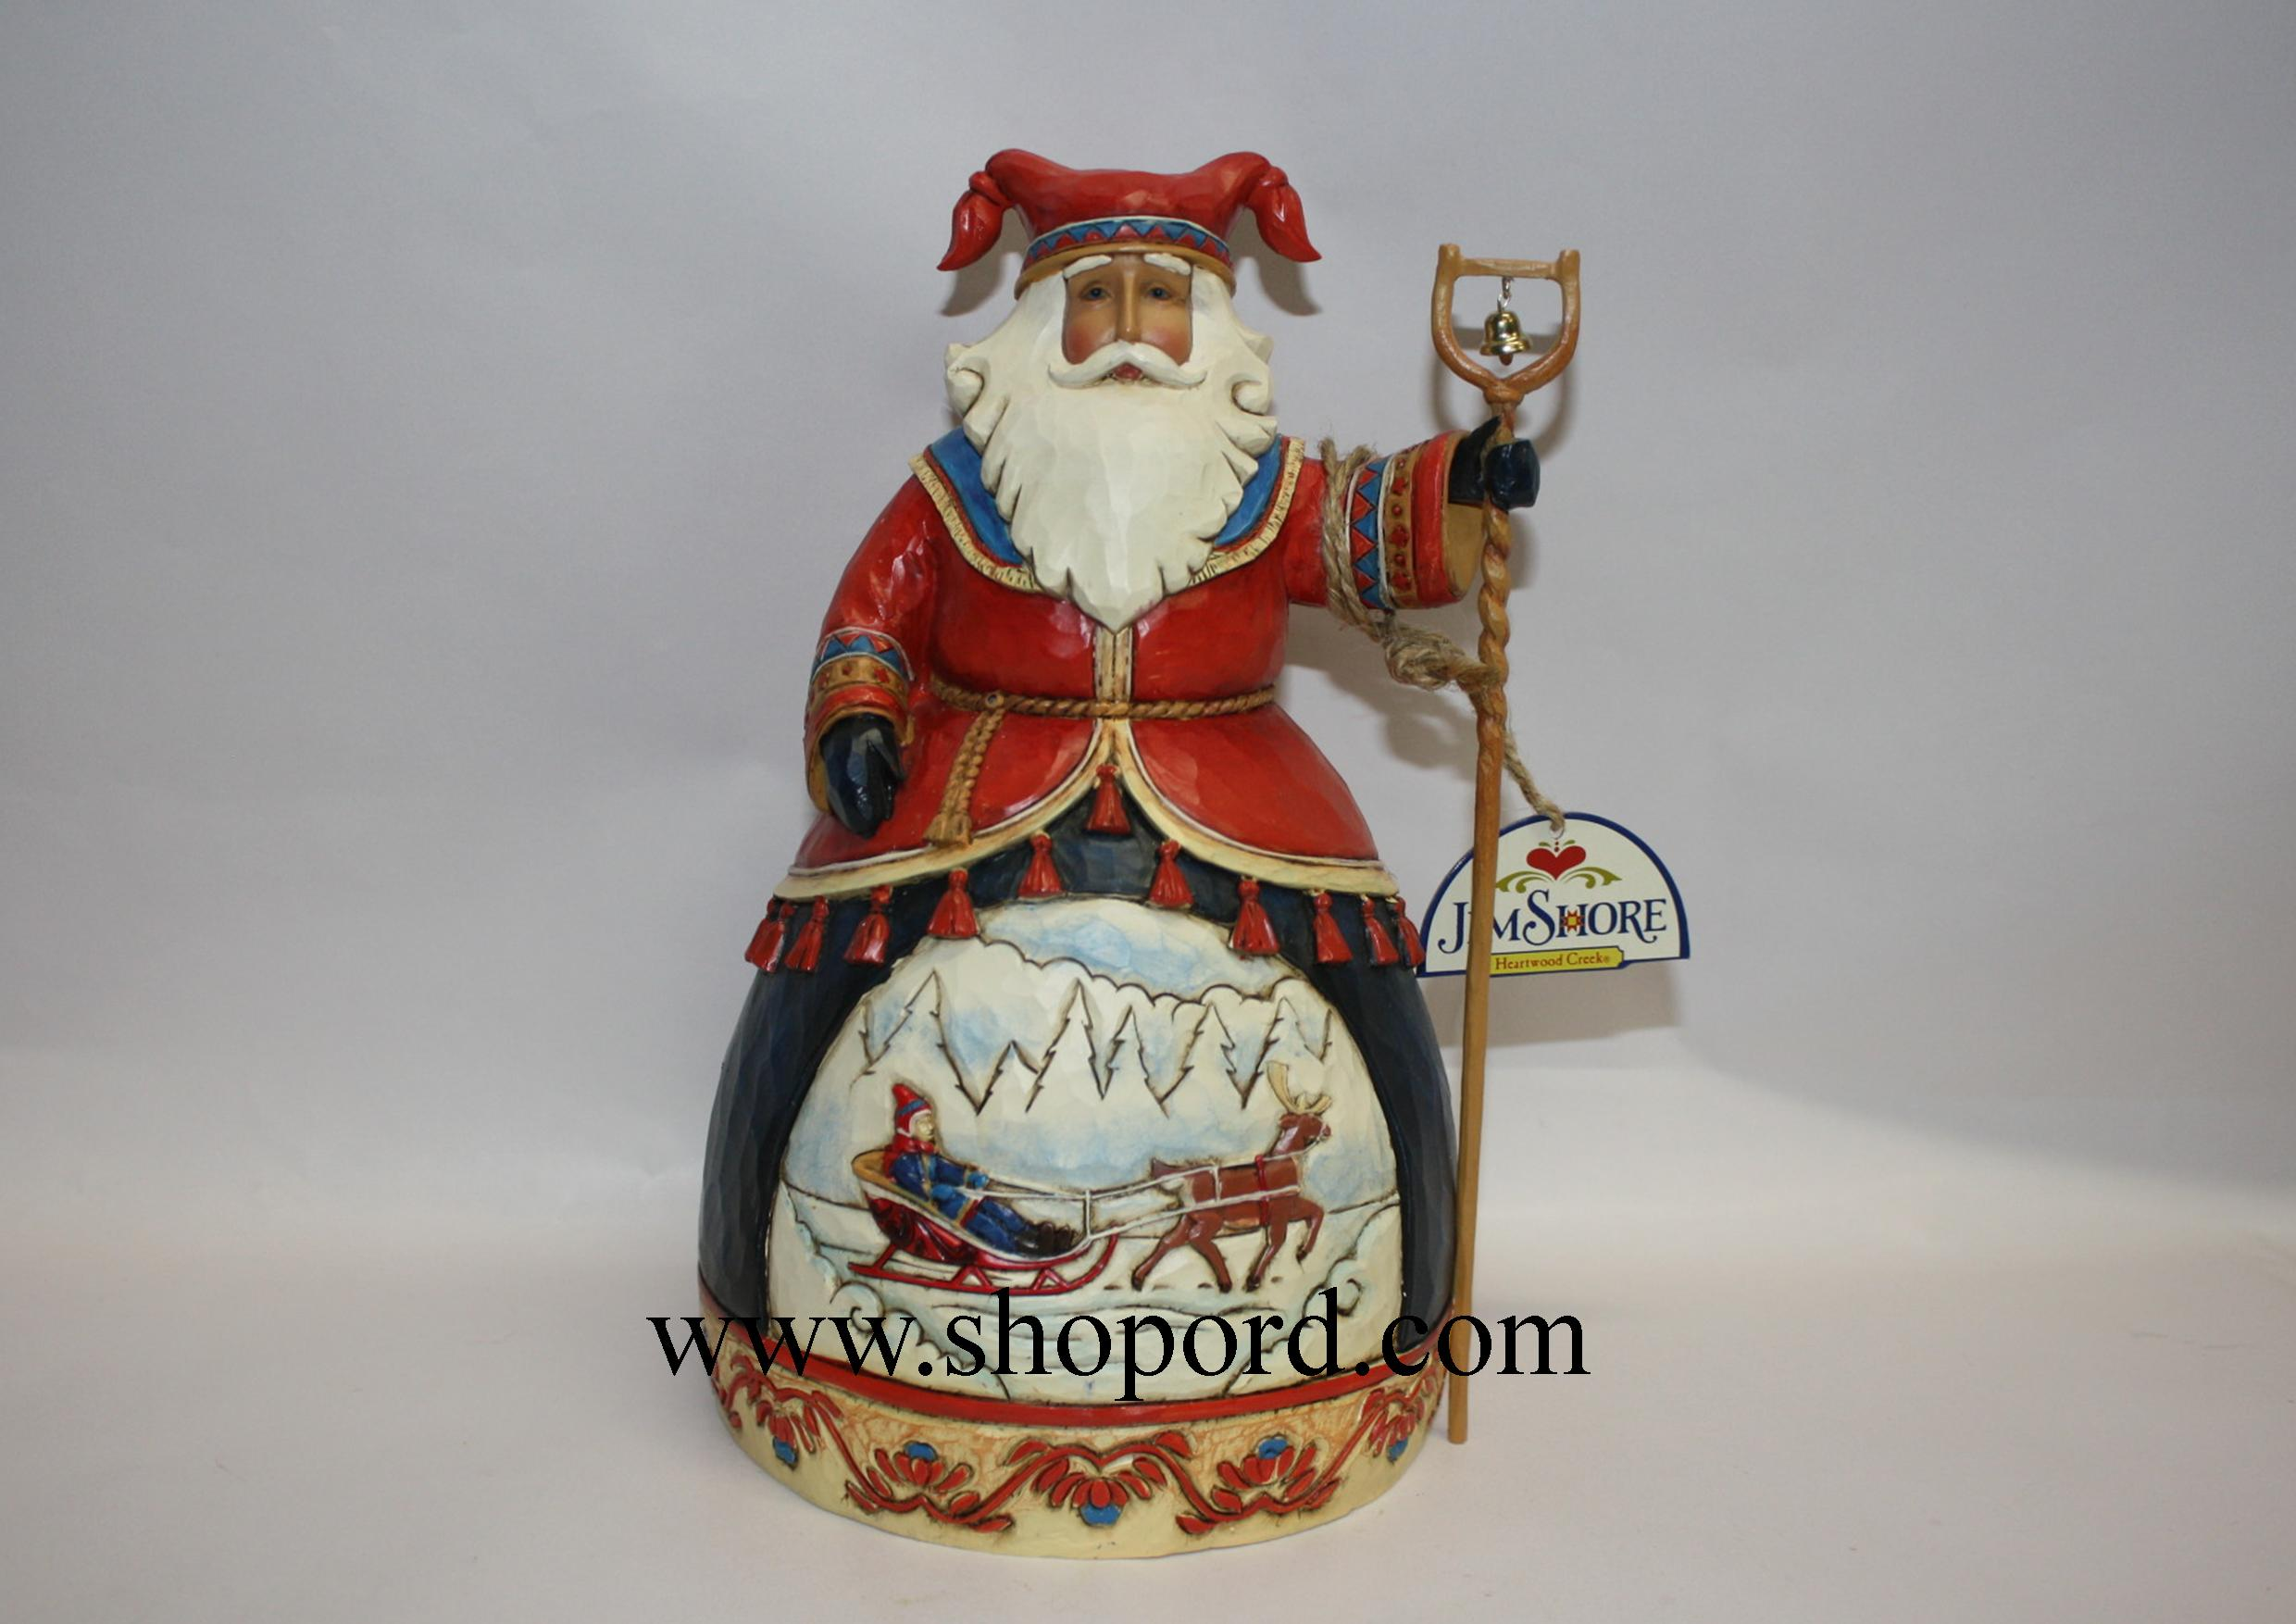 Jim Shore Dashing To A Merry Celebration Lapland Santa Sleigh Scene 5th in The Lapland Santa Series Figurine 4025842